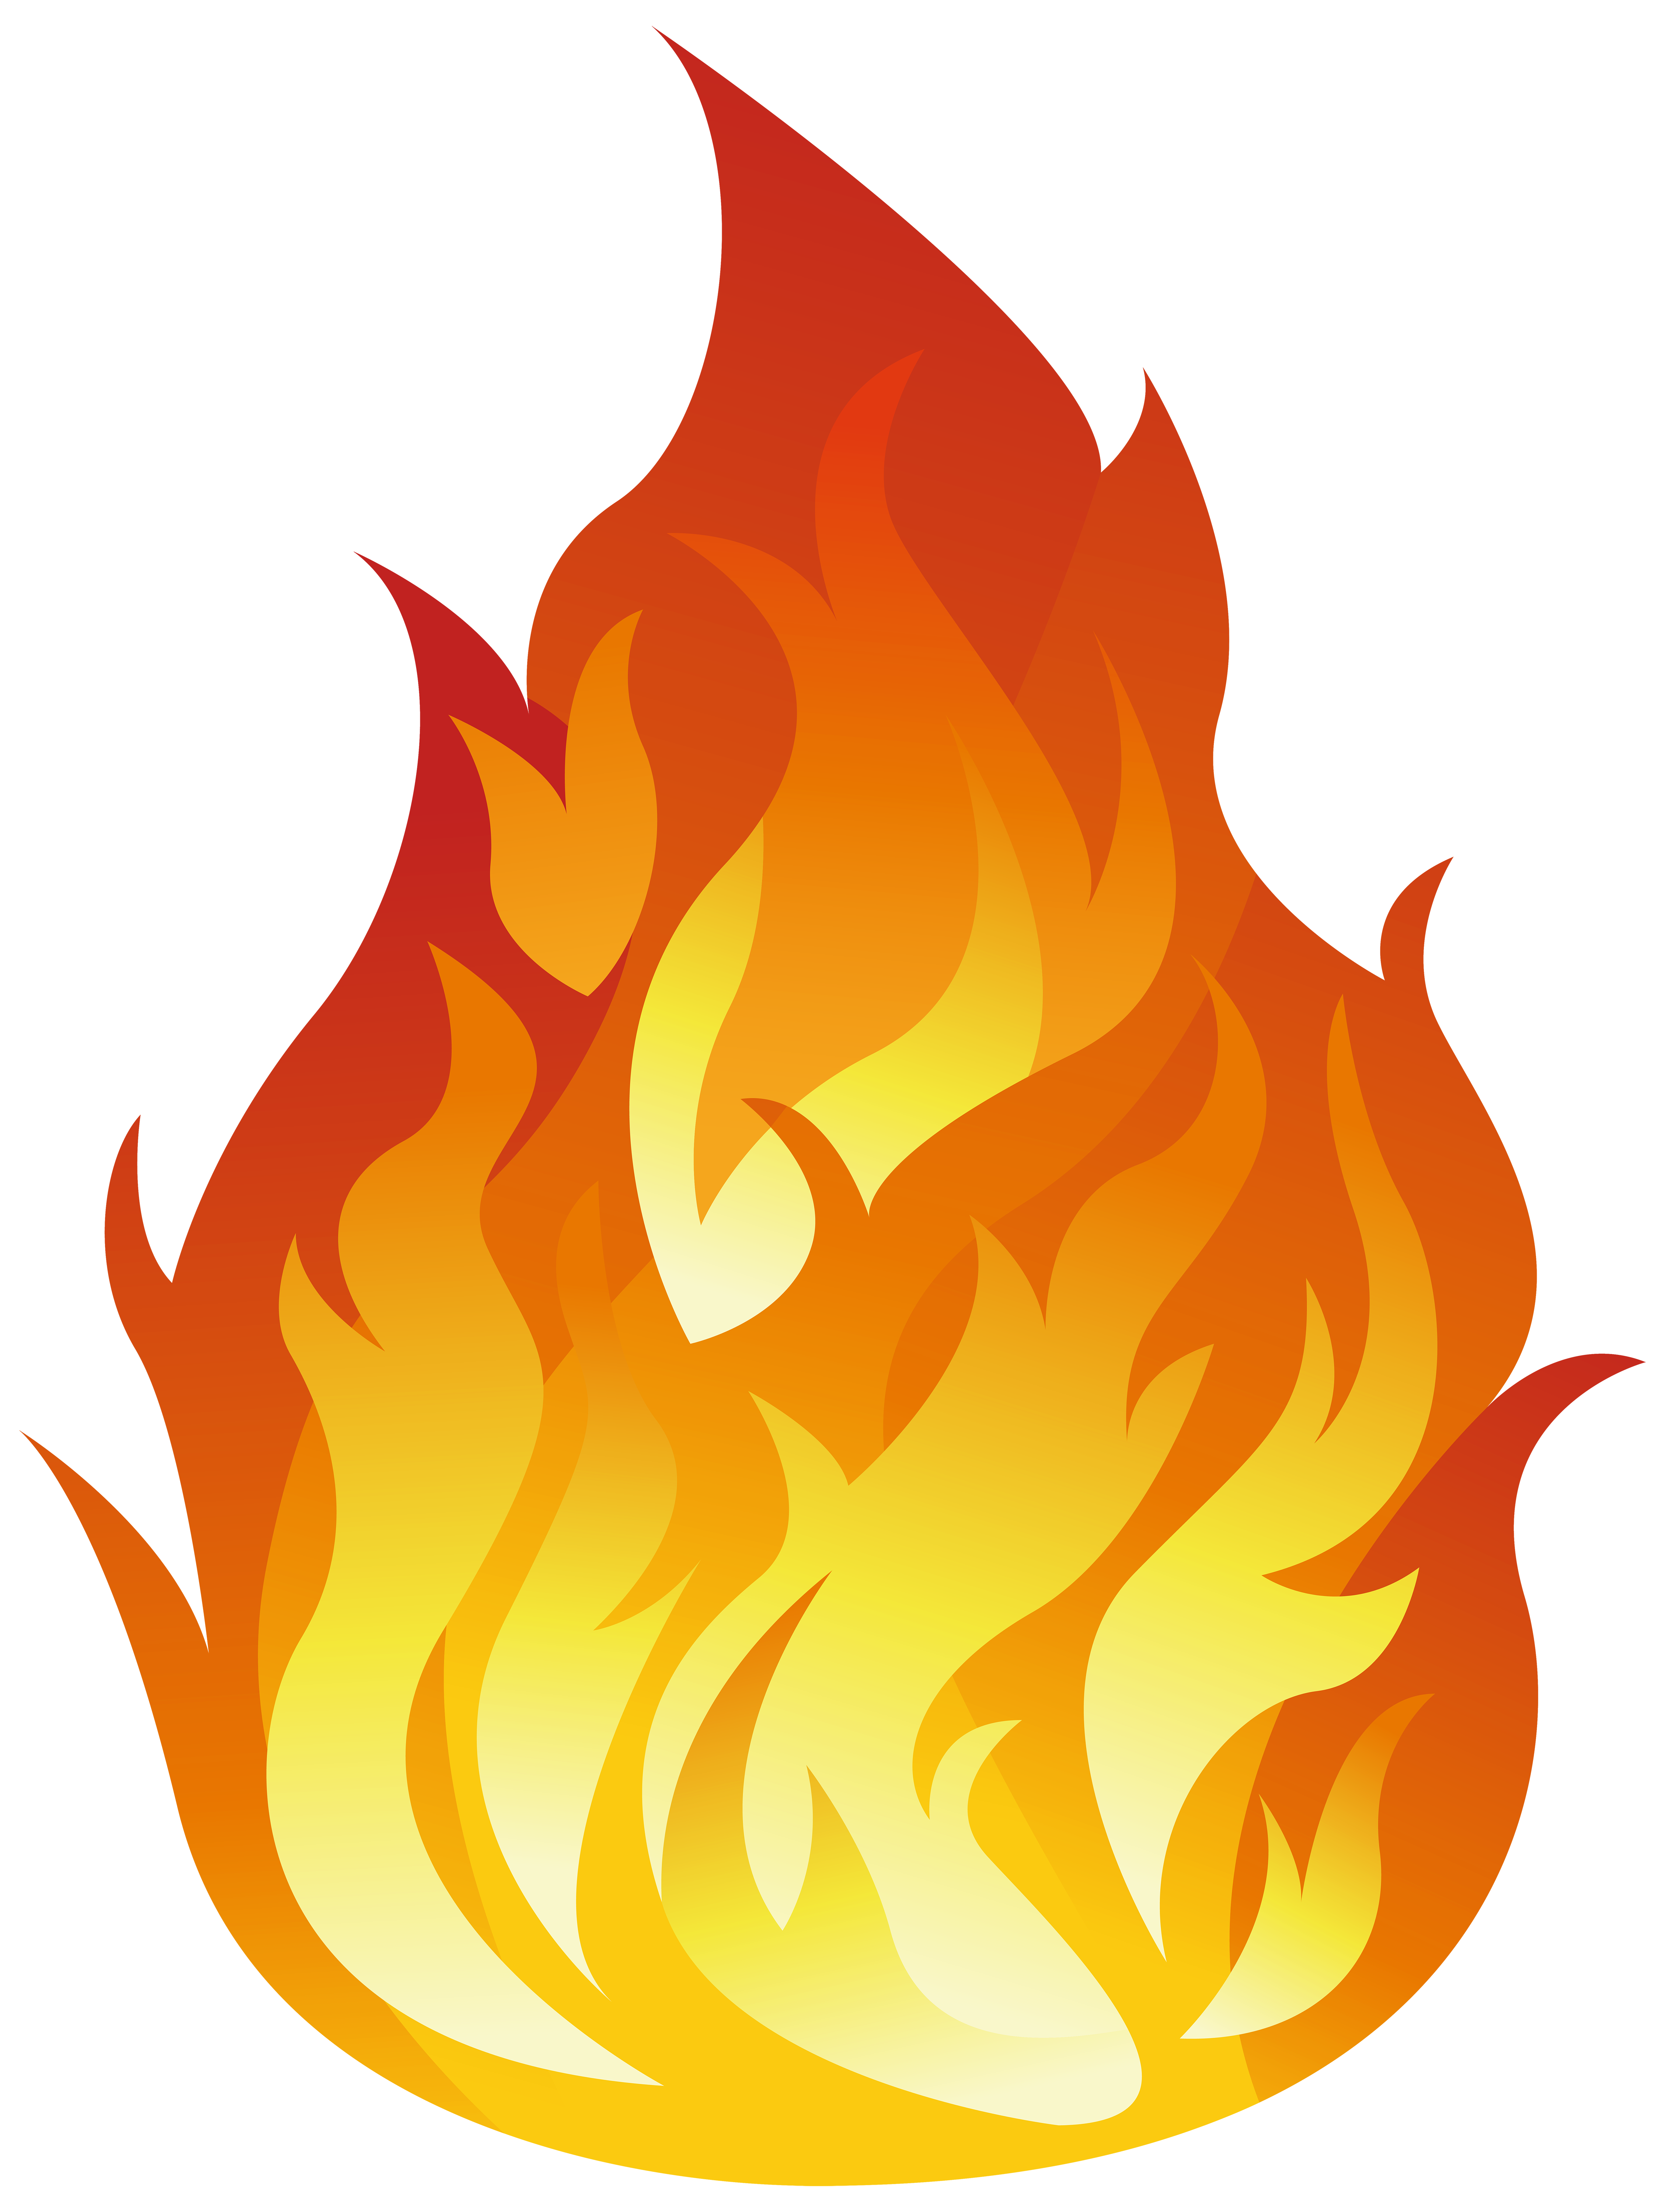 Fuego vector png. Flame transparent clip art